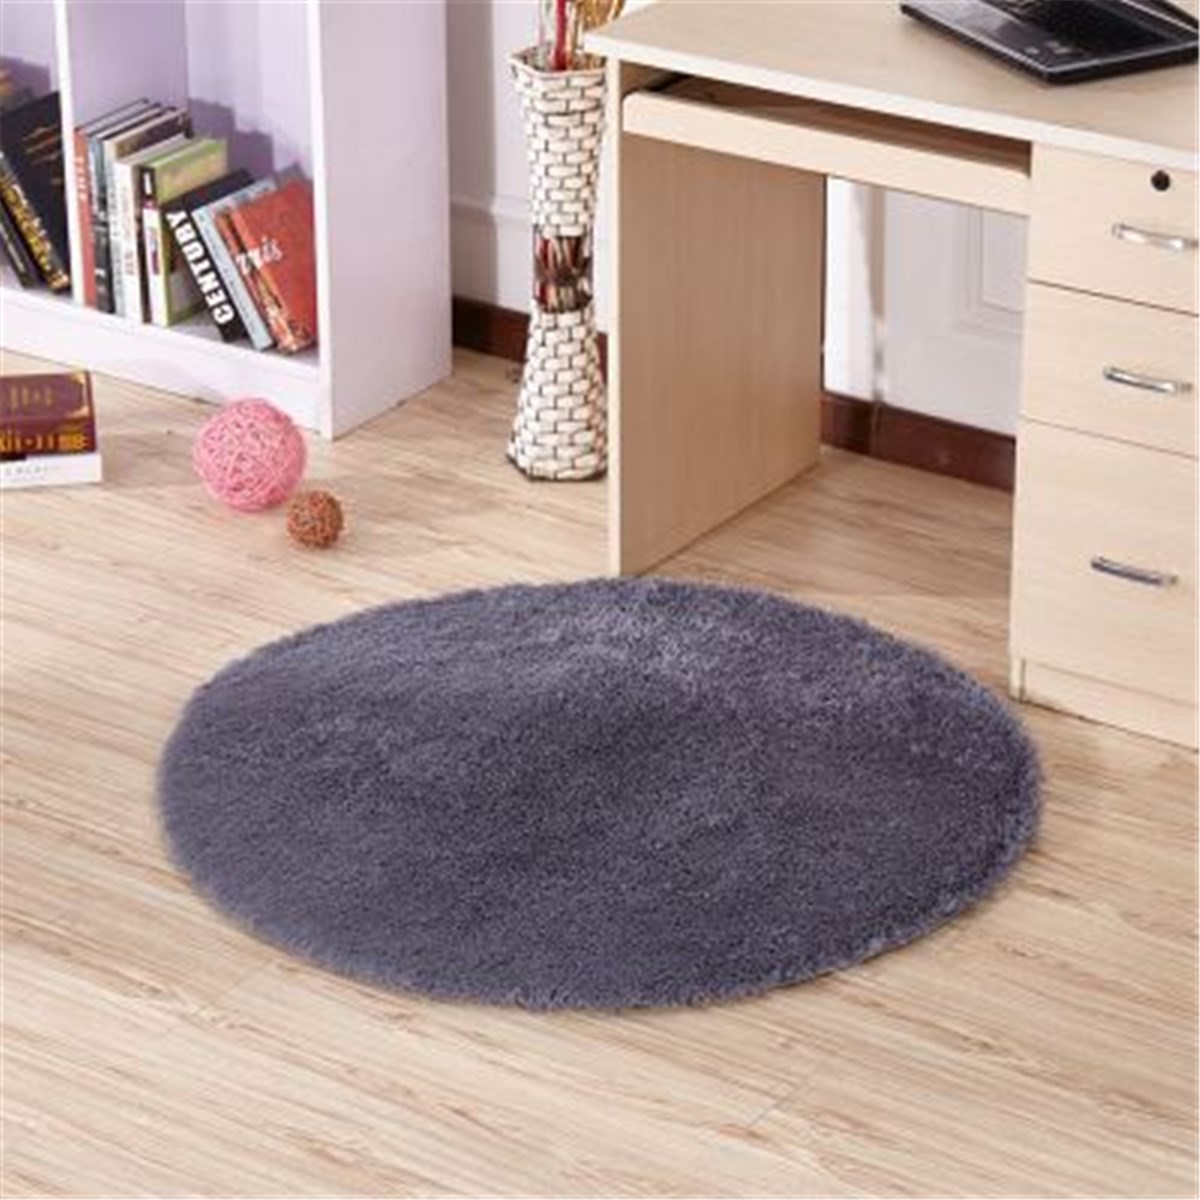 grey floor mats modern shaggy round rugs and carpets non slip shower living room bedroom carpet